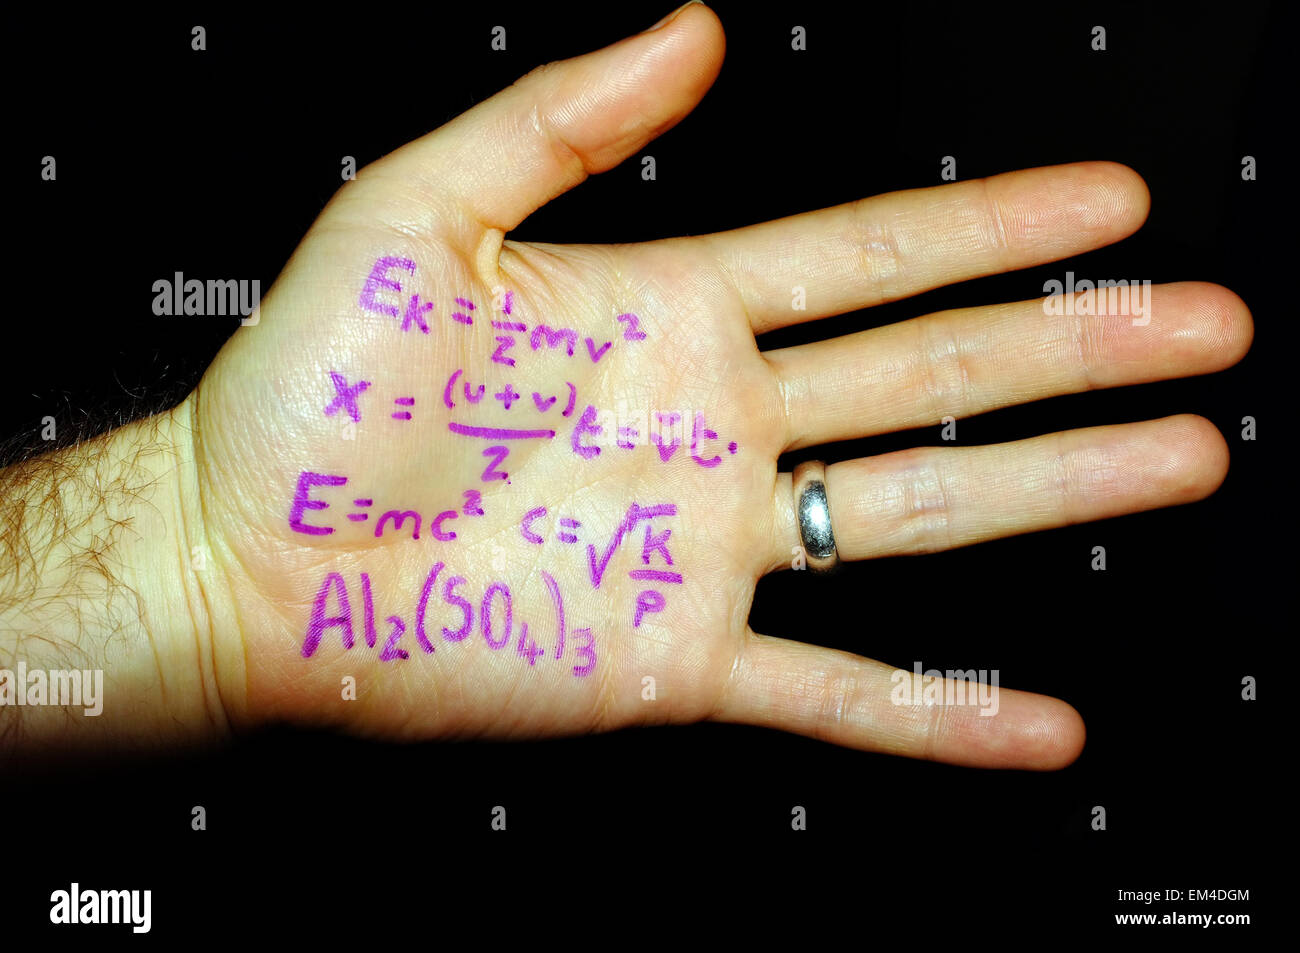 Physics formulas written on a white man's hand photographed against a black background. - Stock Image